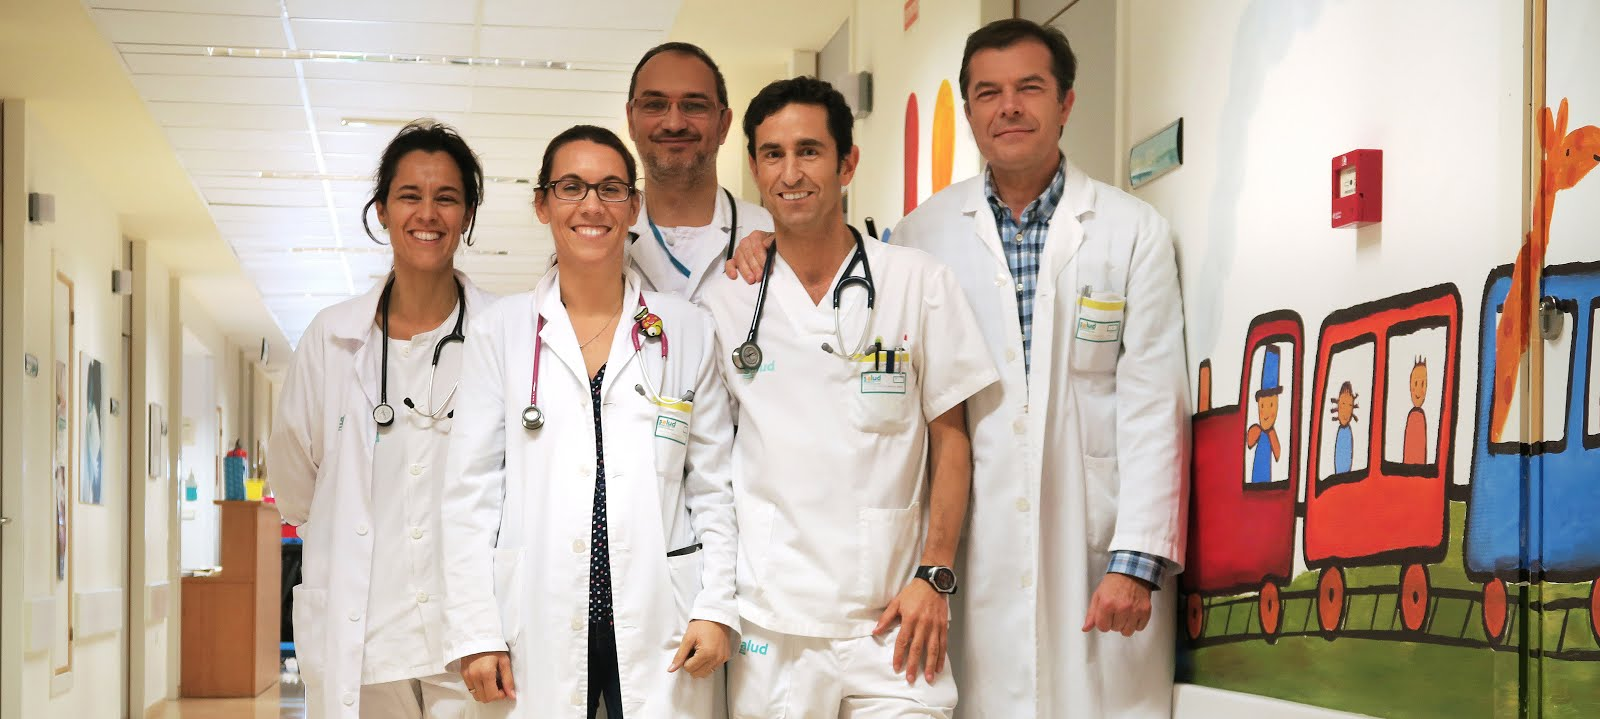 EQUIPO DE PEDIATRÍA DEL HOSPITAL DE BARBASTRO (Iniciativa Hospital Amigo de los Niños)